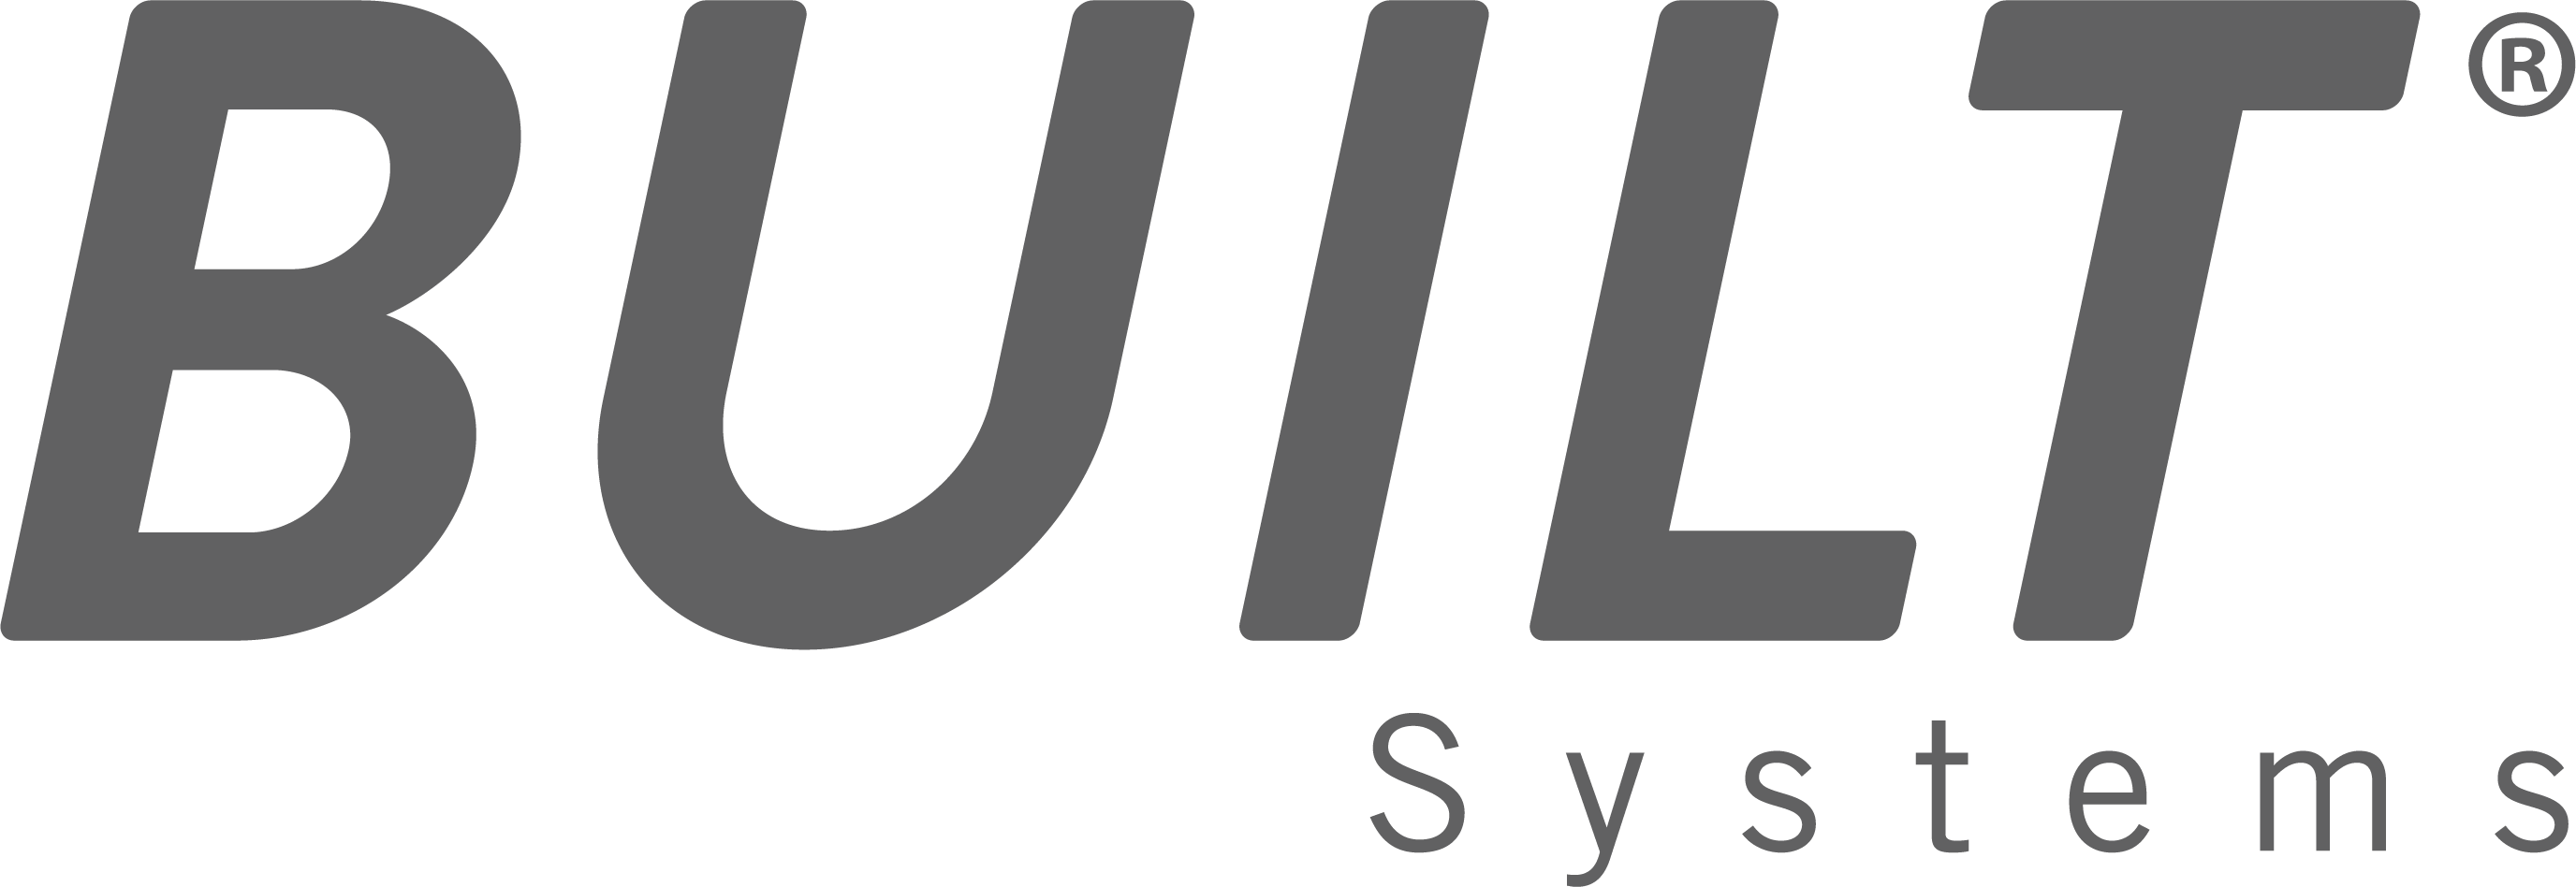 Built systems